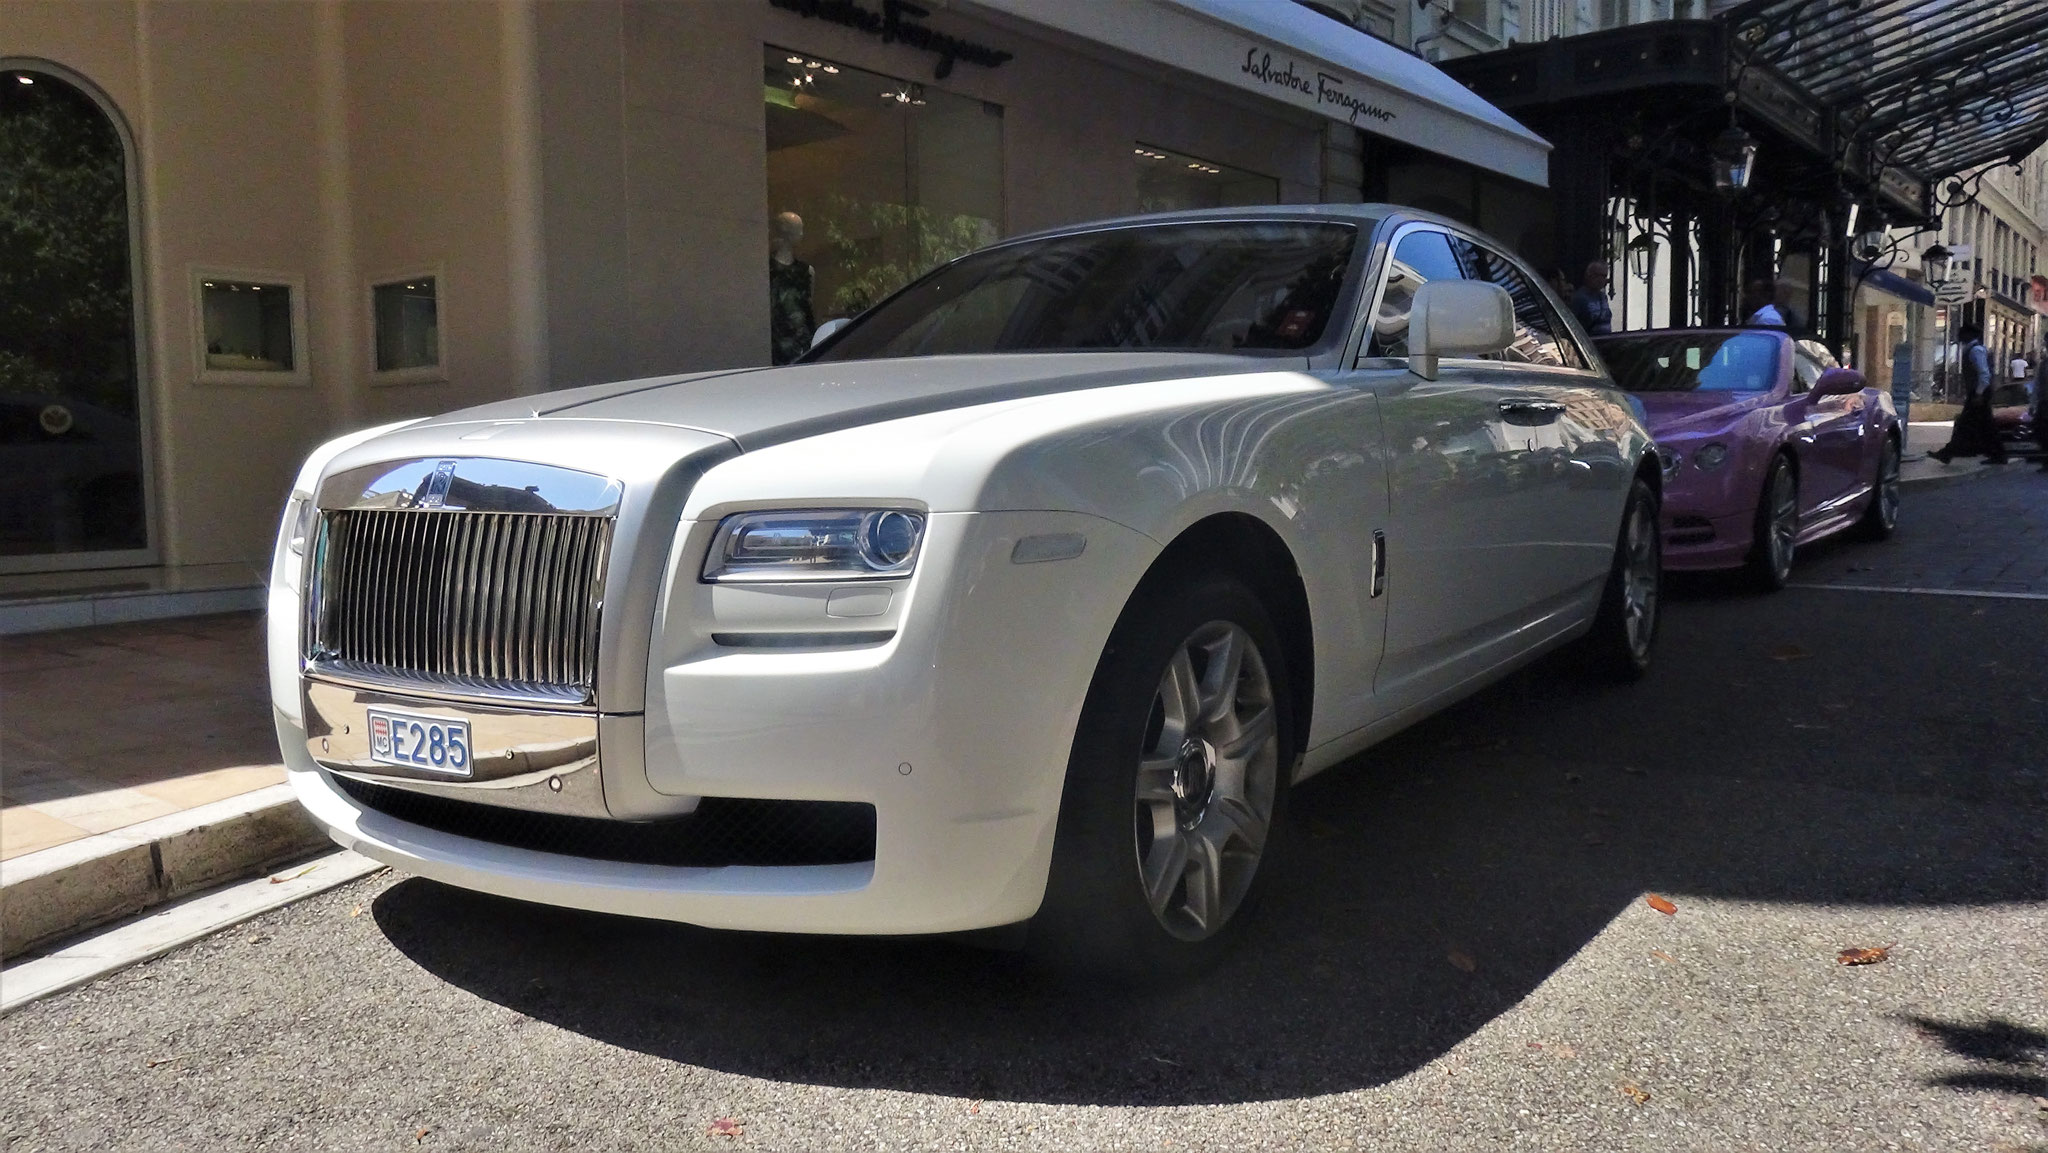 Rolls Royce Ghost - E285 (MC)